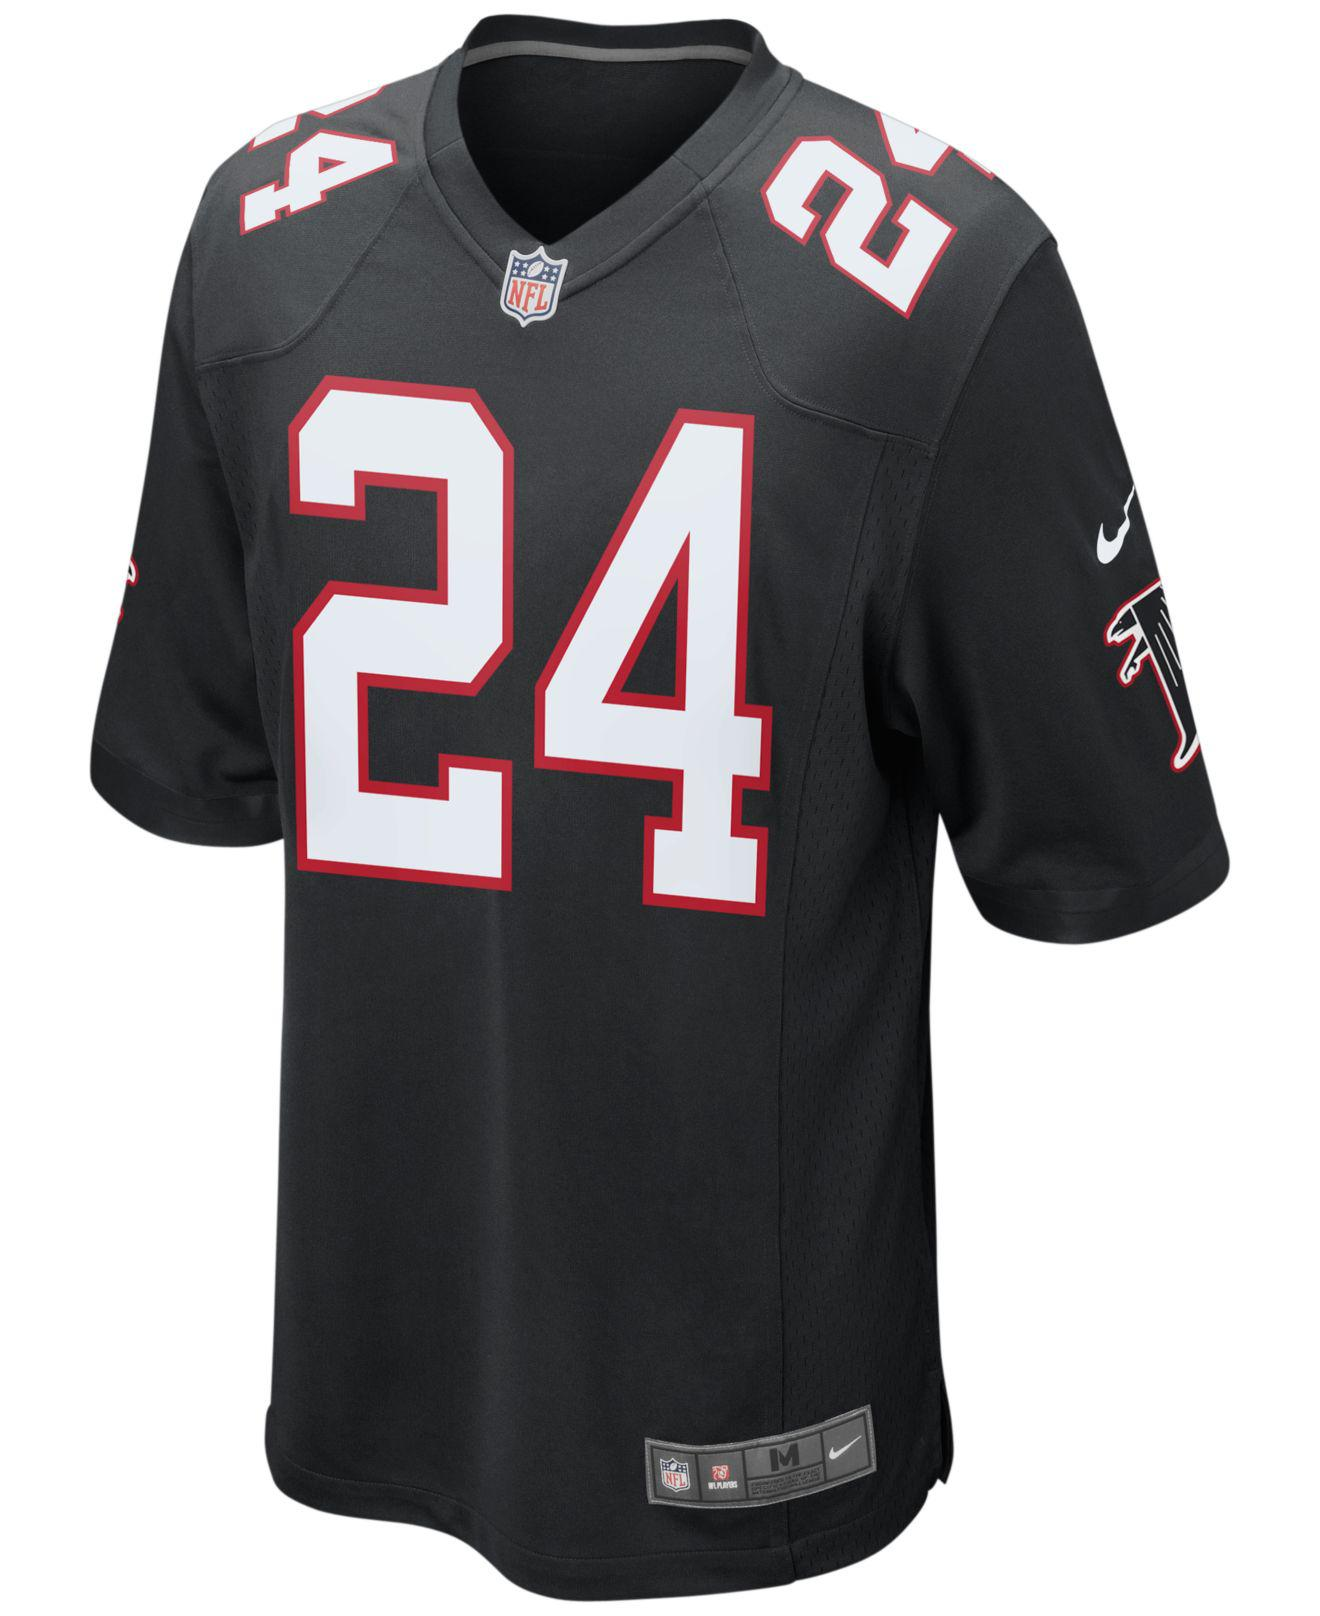 3225469f0 ... usa lyst nike mens devonta freeman atlanta falcons game jersey in black  for men b09cc 4de7e